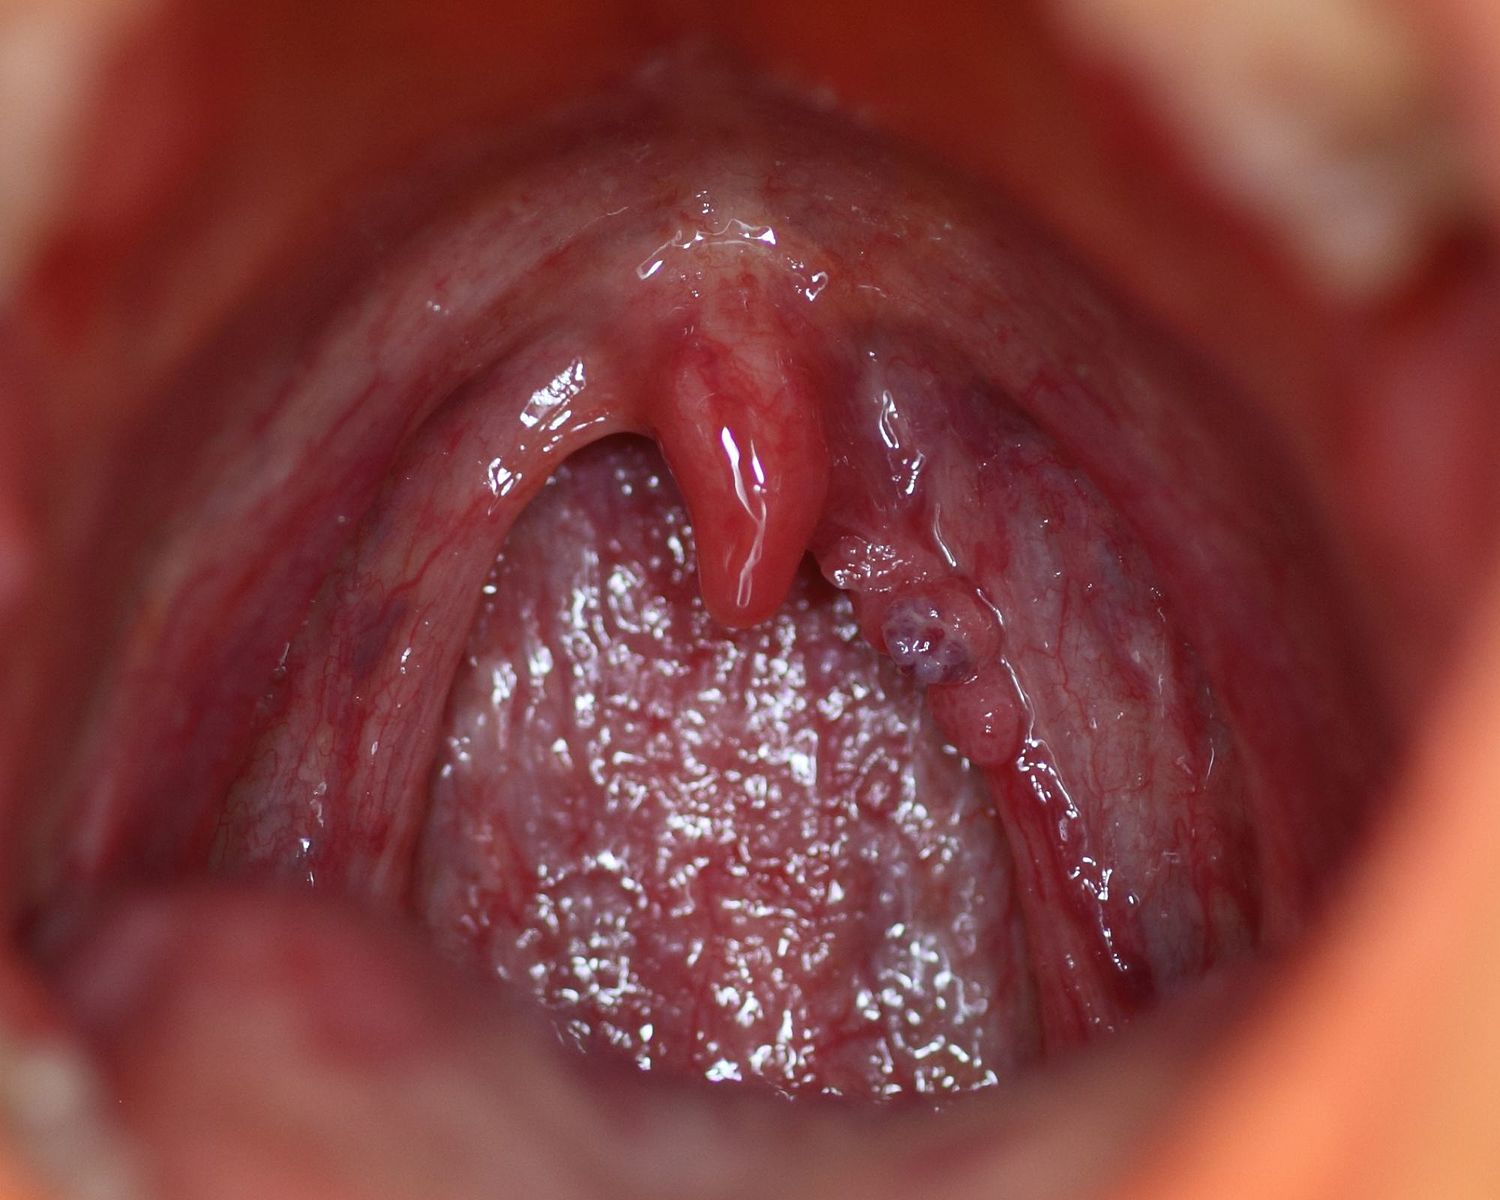 papilloma mouth symptoms